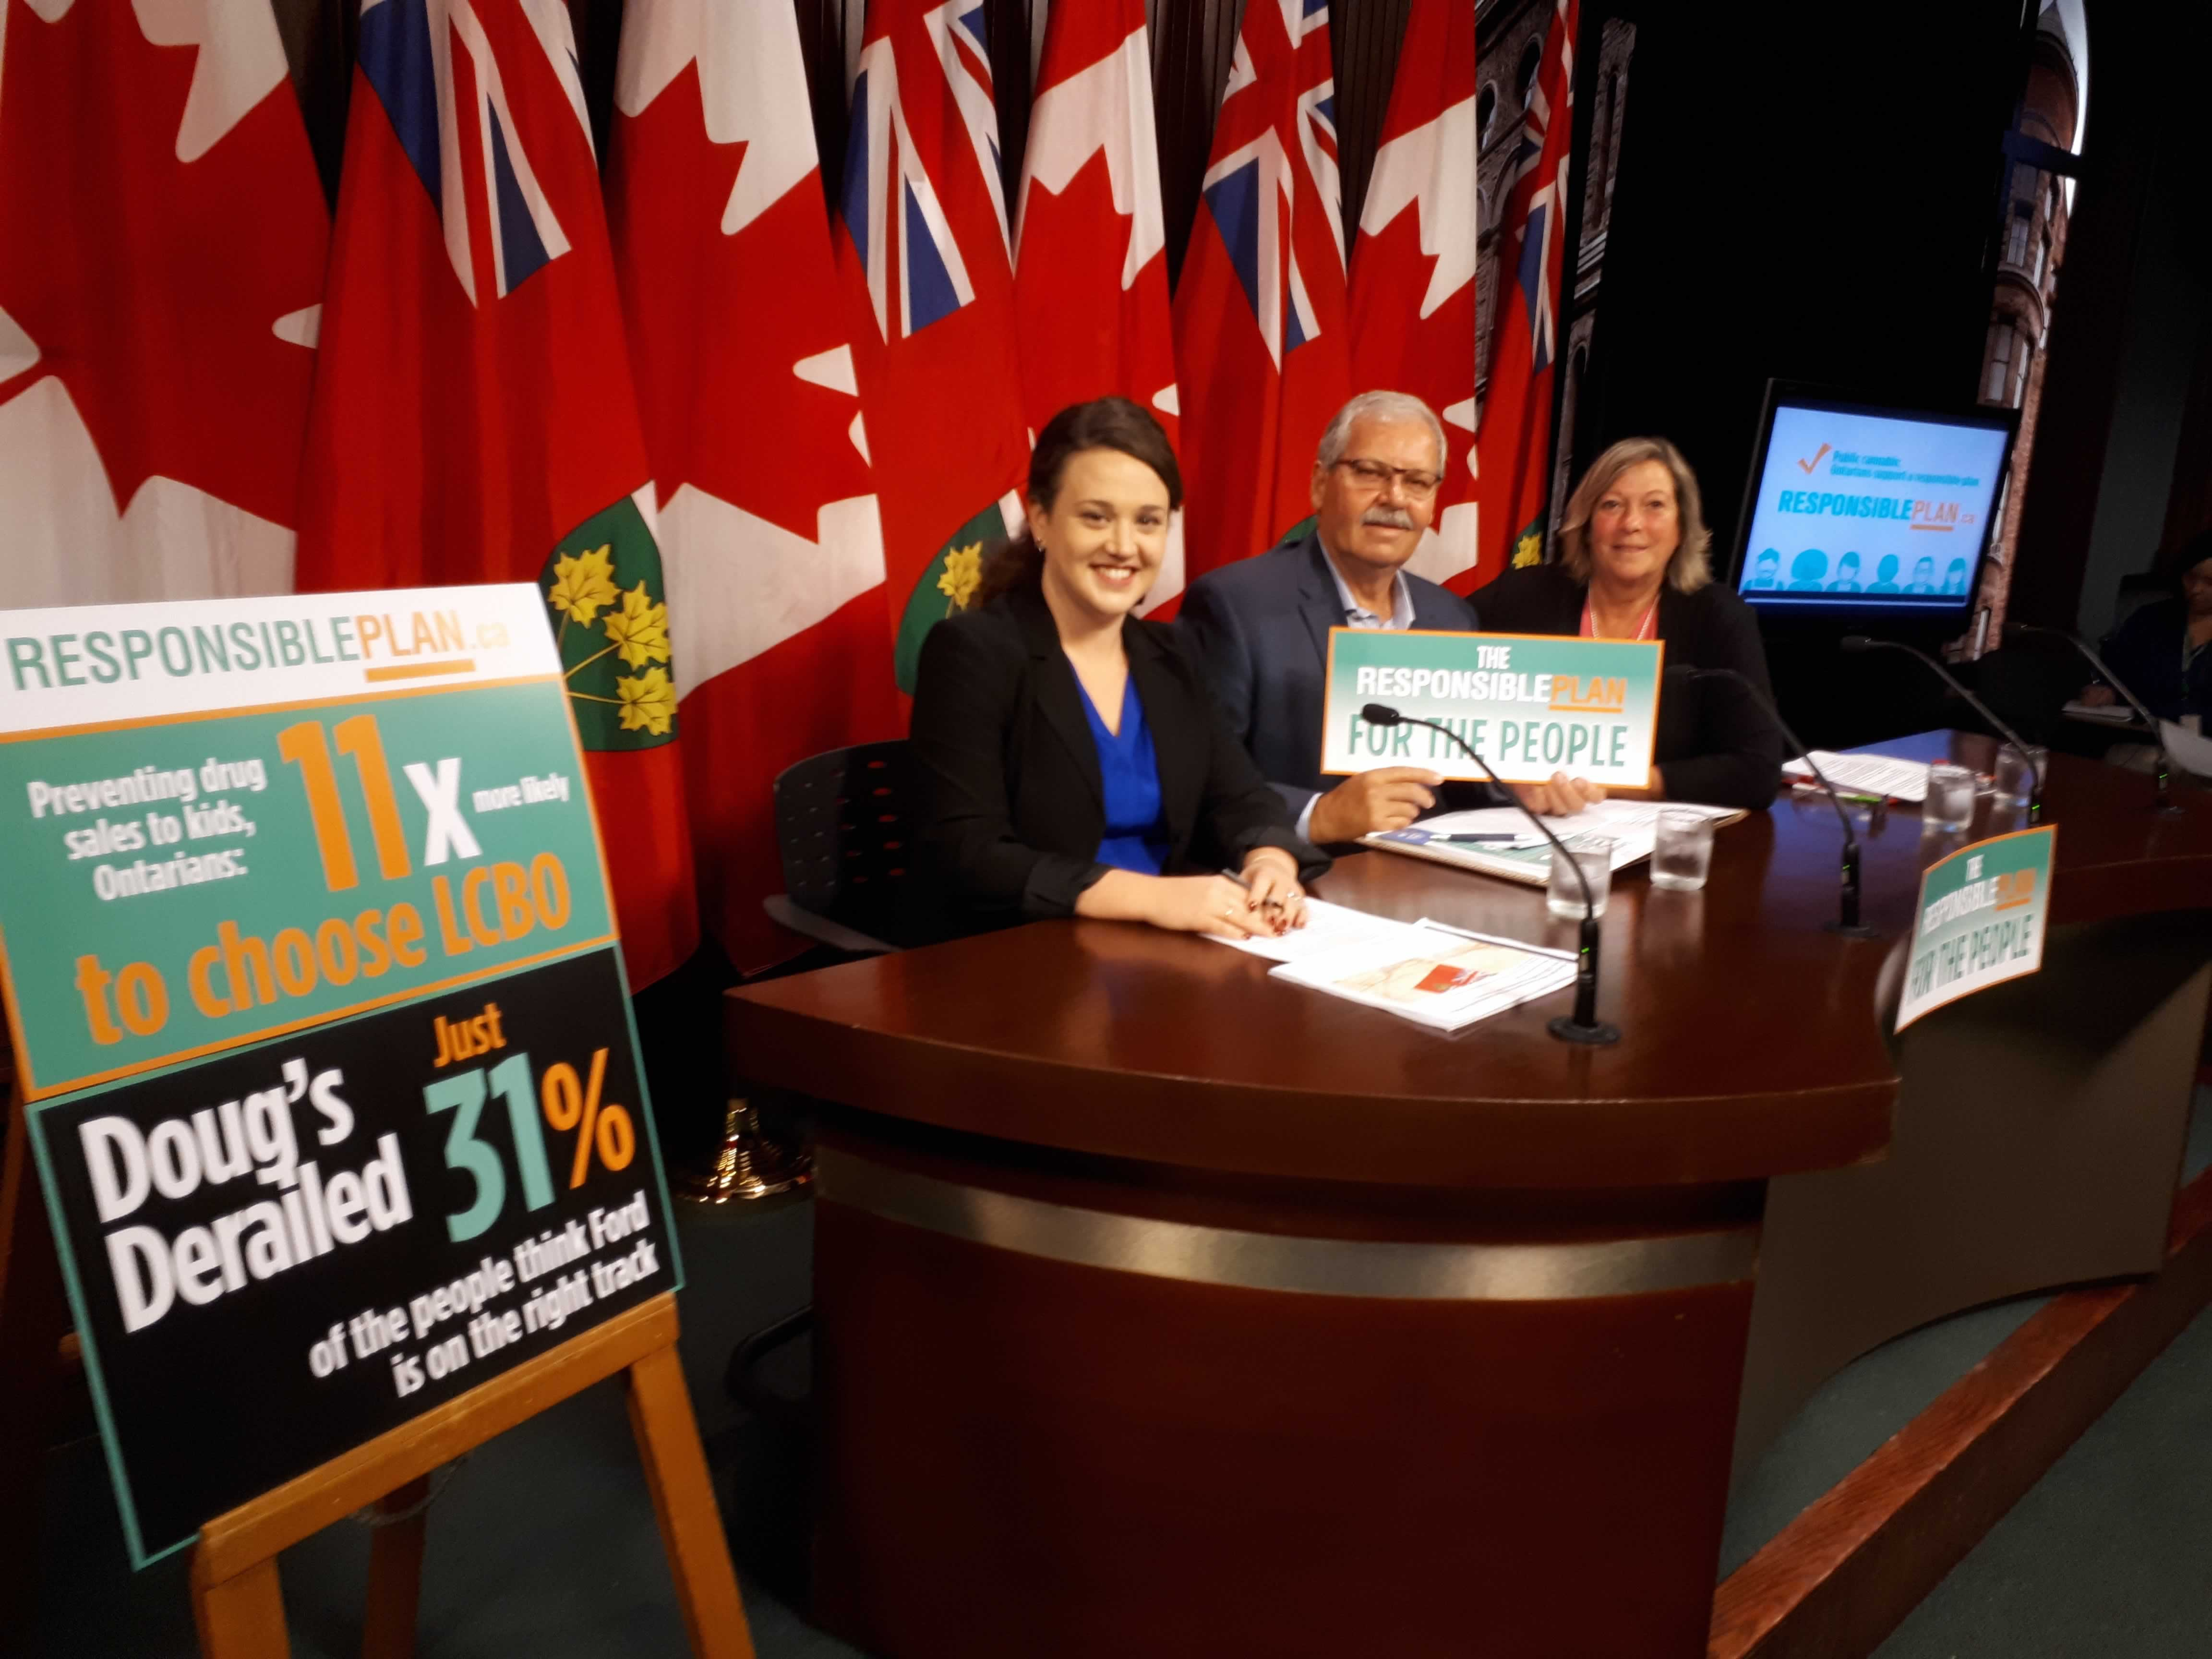 OPSEU President Warren (Smokey) Thomas and LBED Chair Denise Davis speak at the Responsible Plan media conference at Queen's Park.